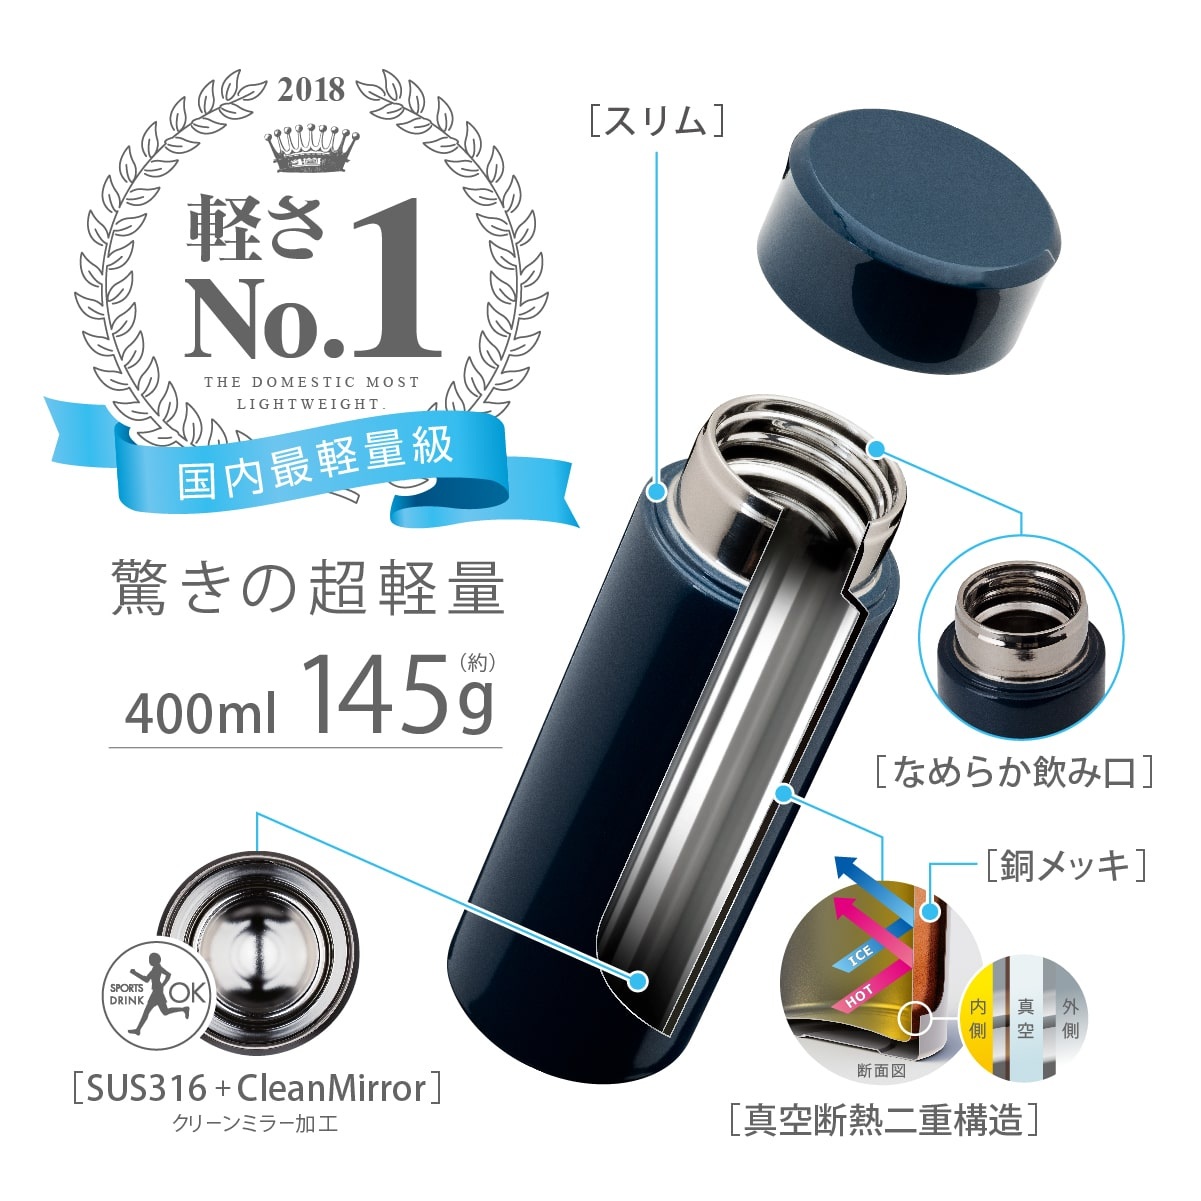 Airlist 超軽量スリムボトル 400ml ピンク image02 thumbnail